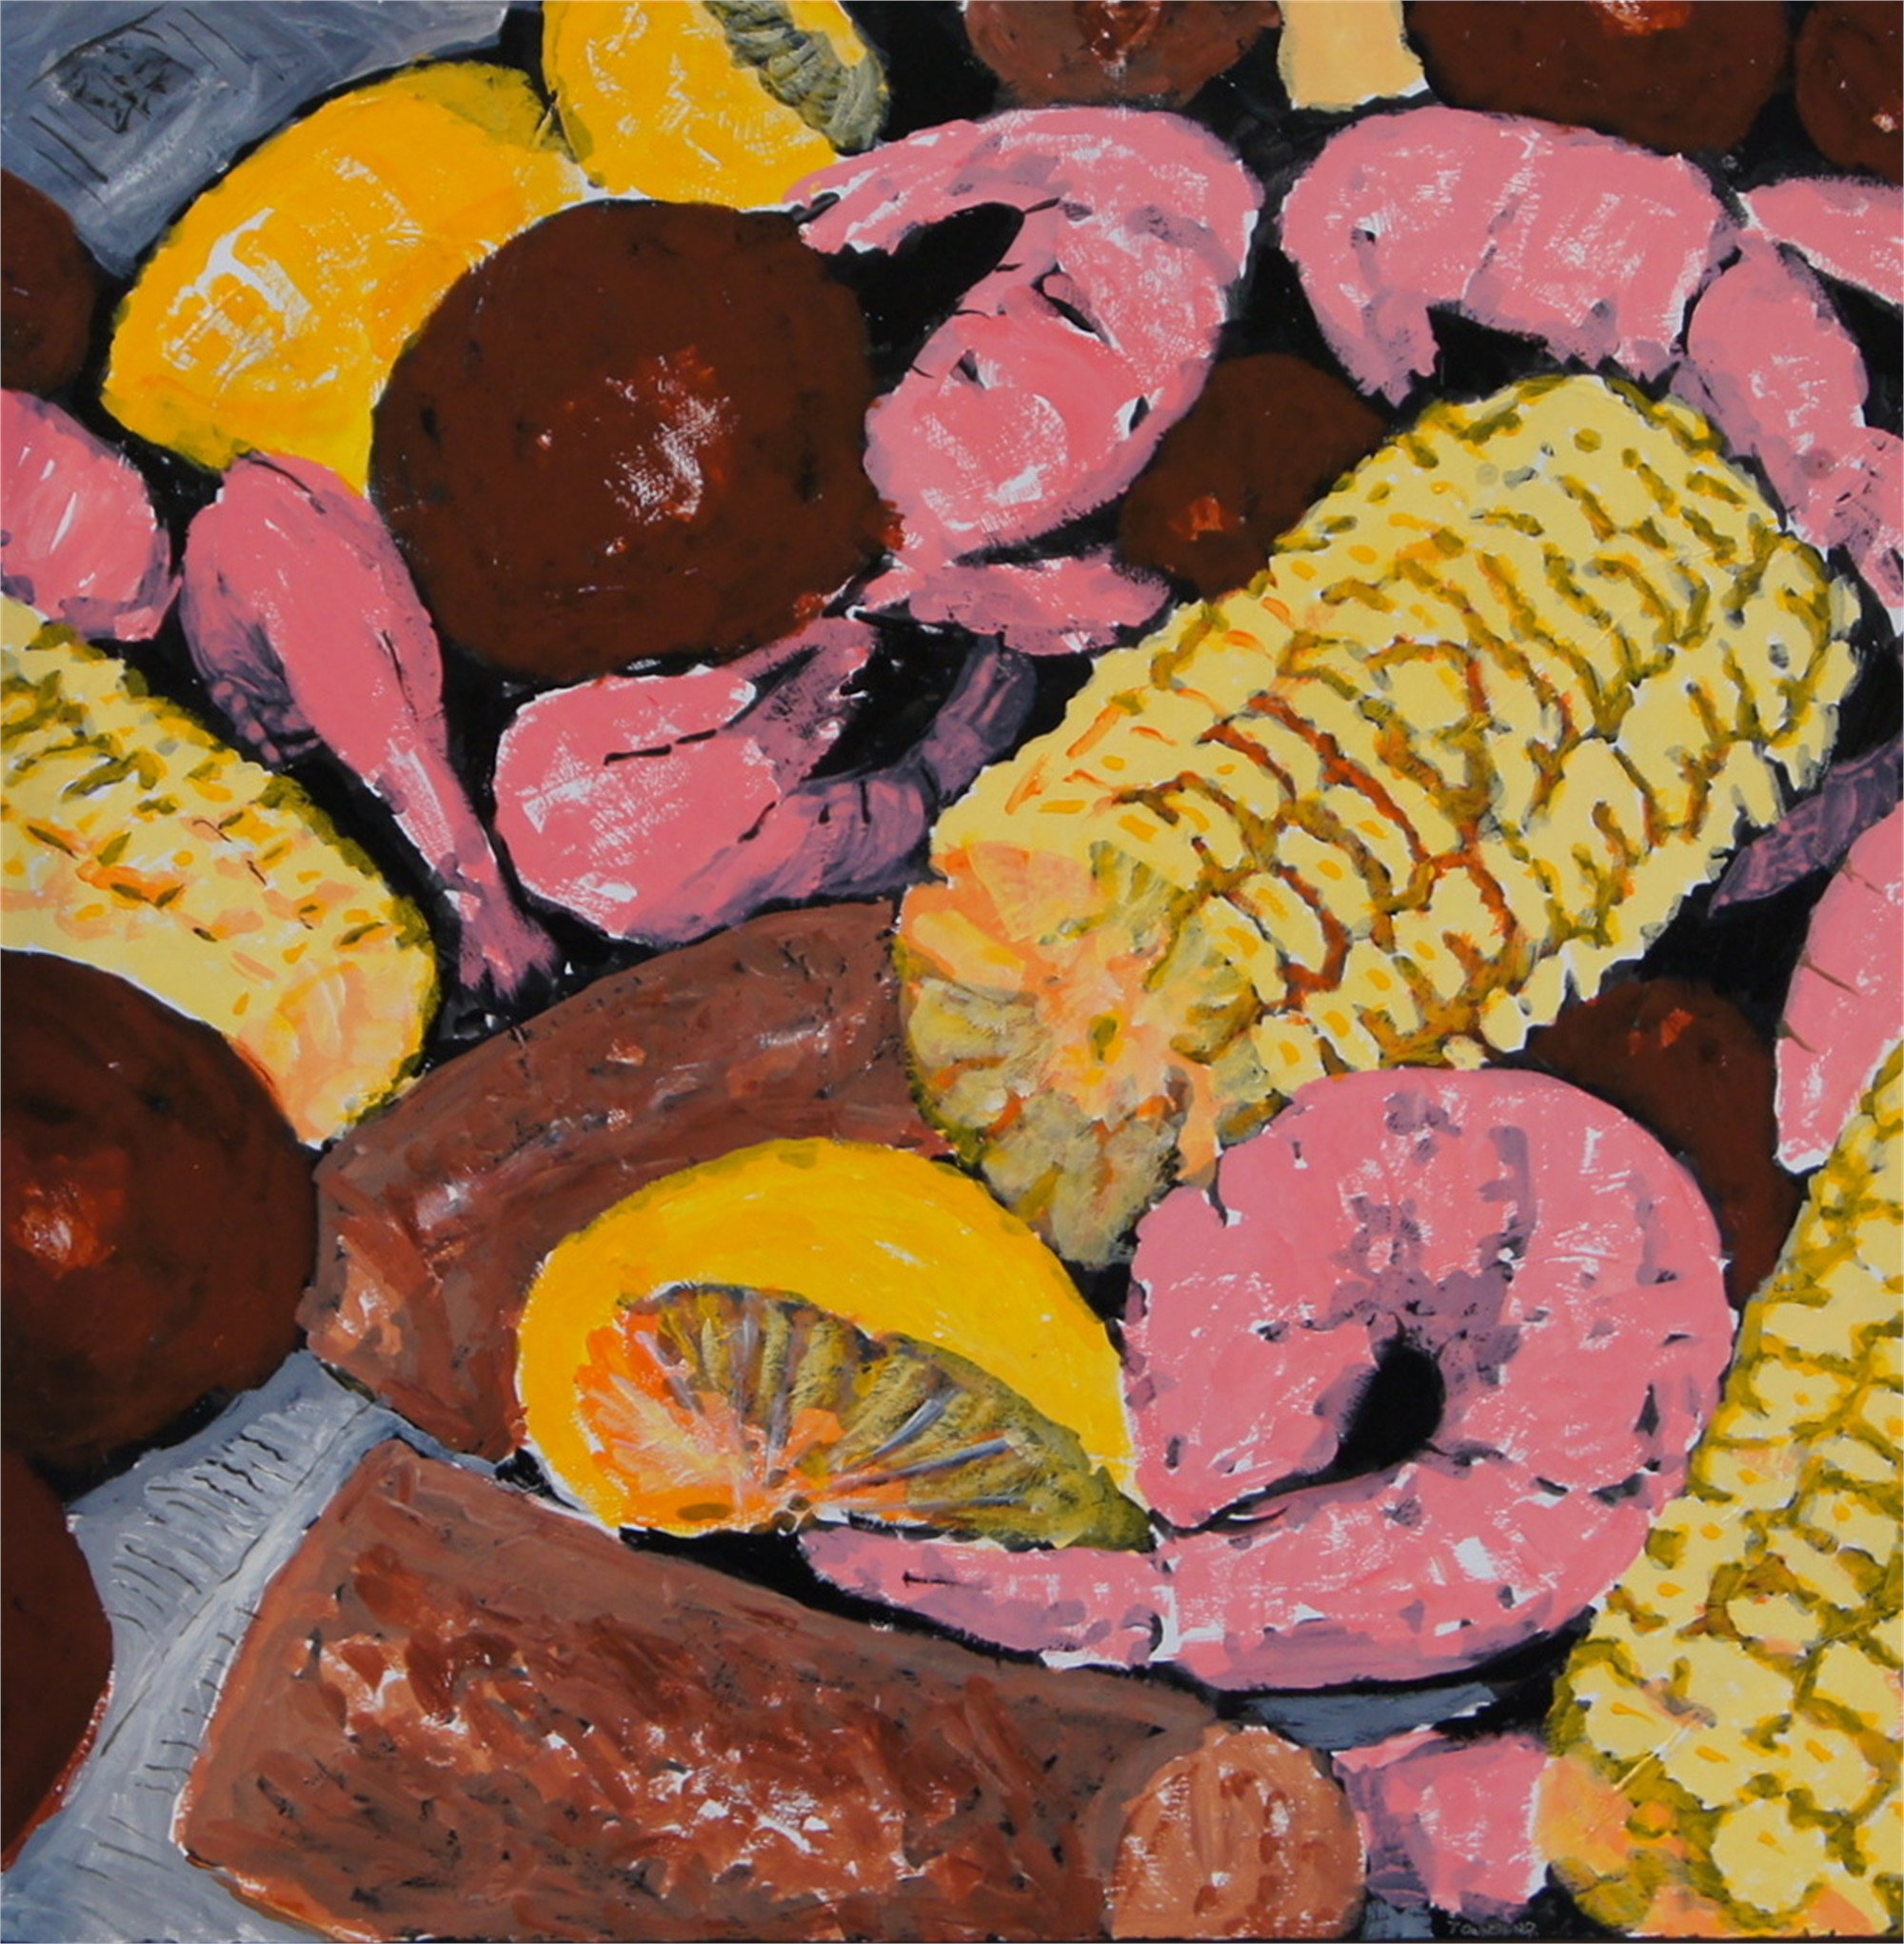 Frogmore Stew / Lowcountry /Boil by John Townsend